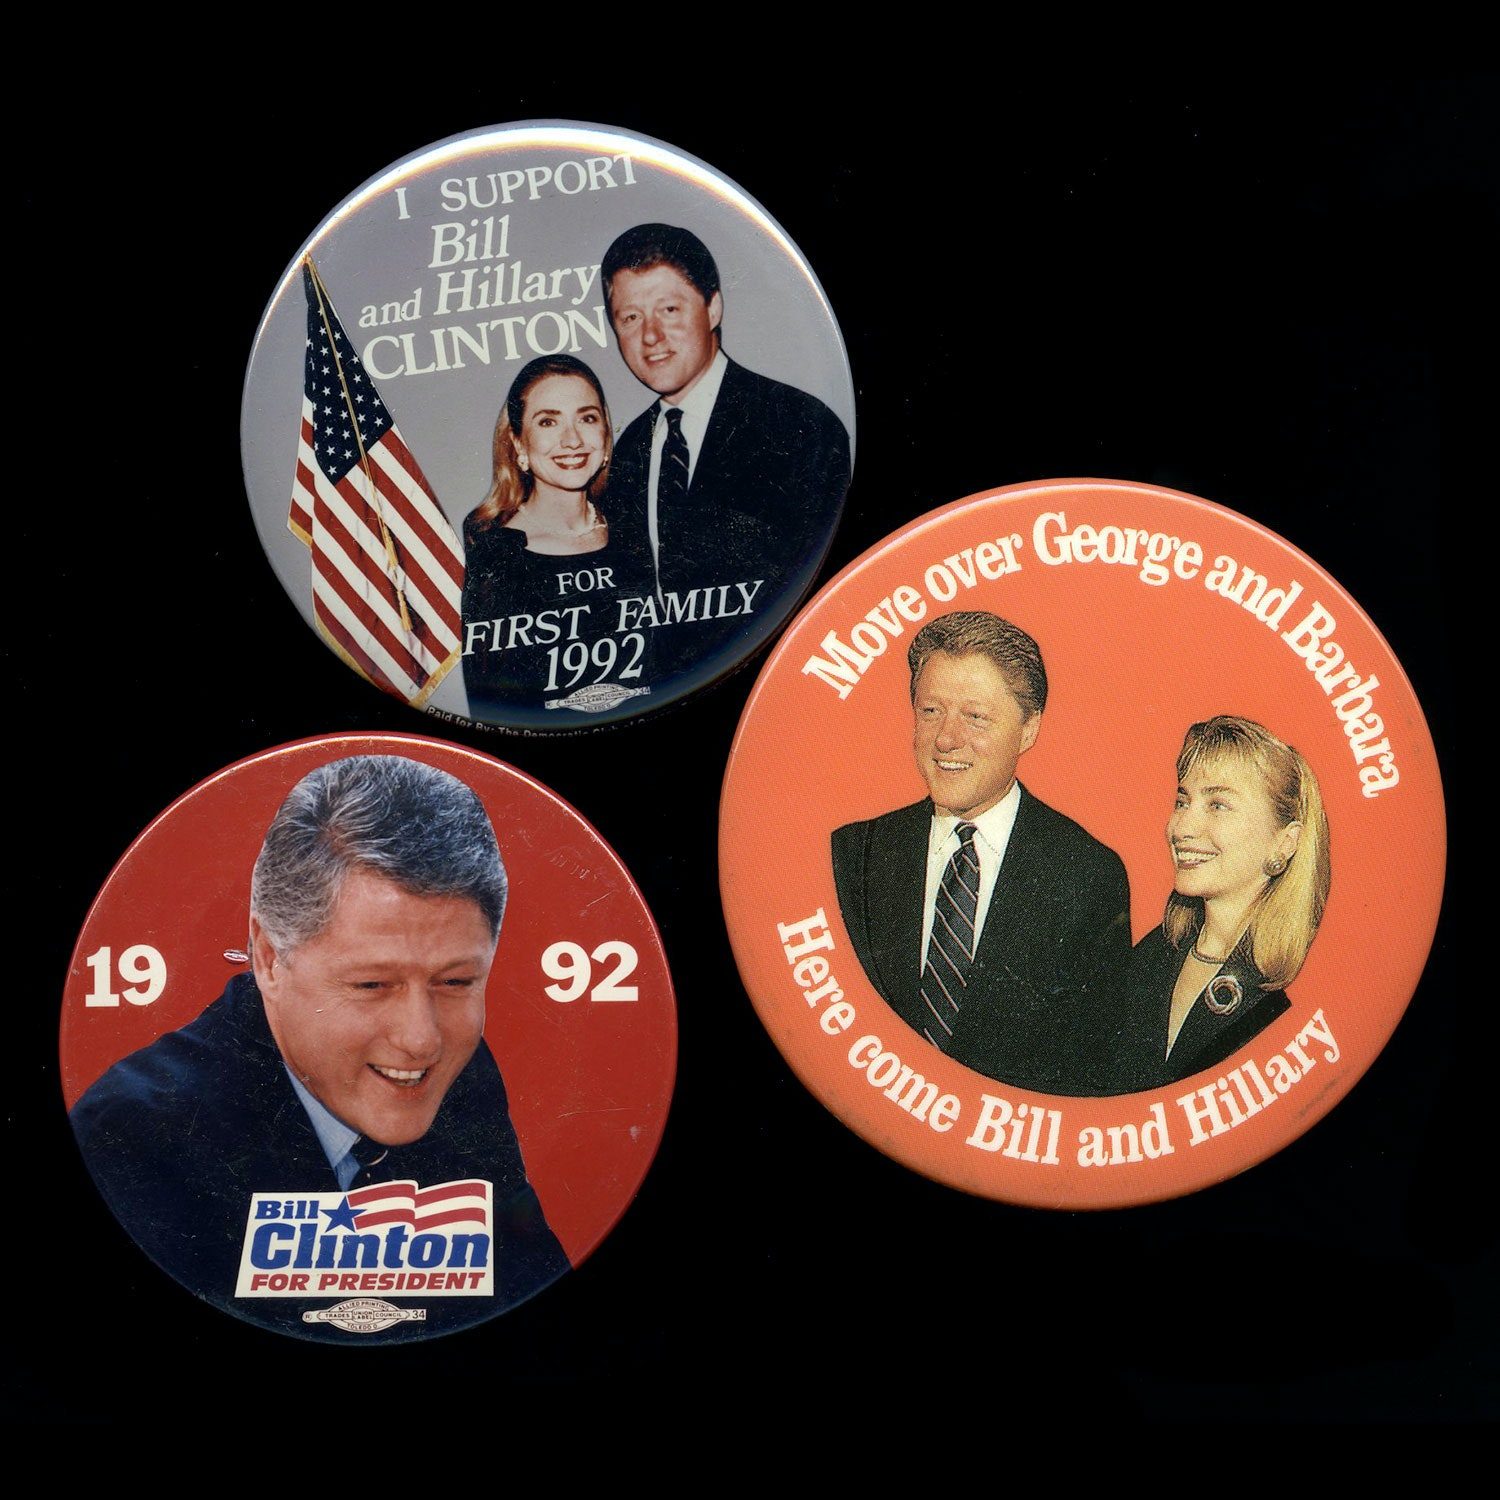 1992 Bill Clinton Presidential Election Buttons